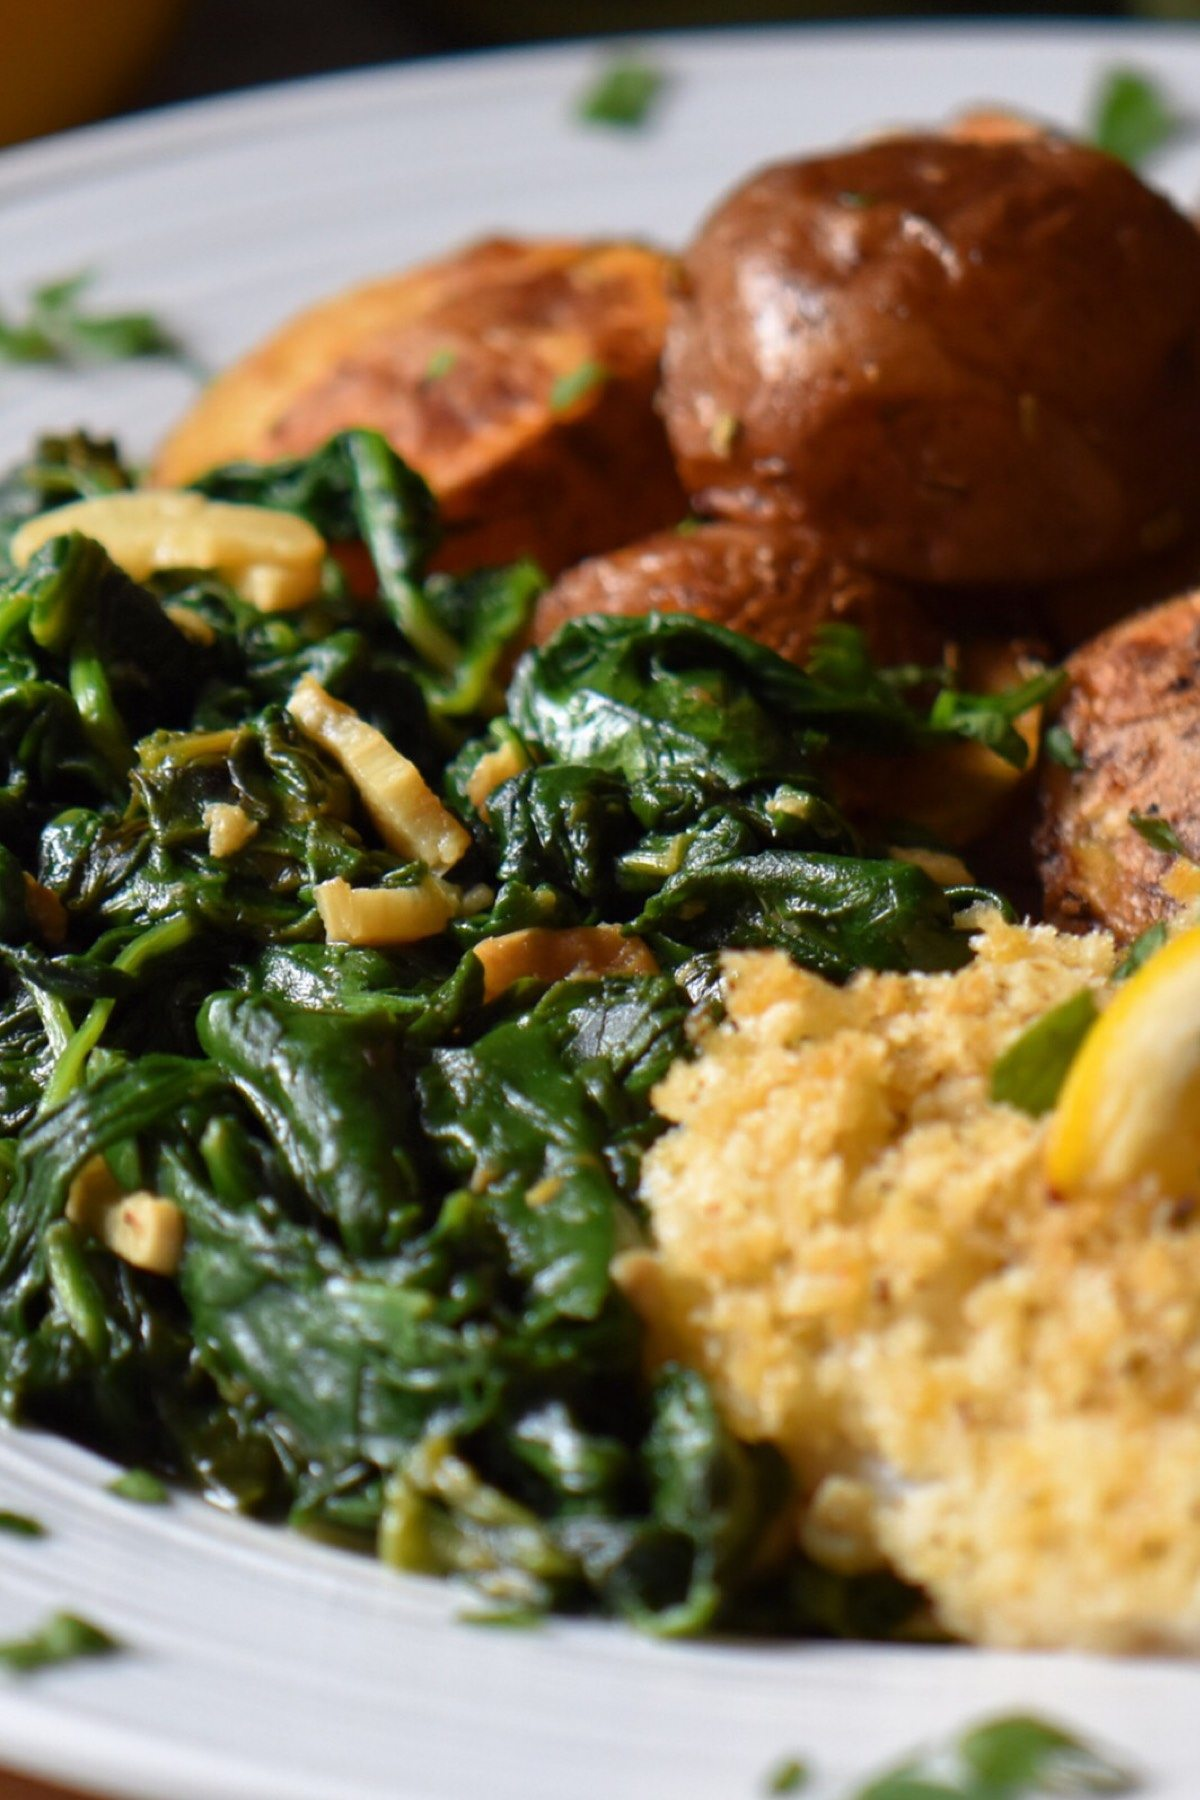 Sauteed spinach as a side dish in a white dinner plate.